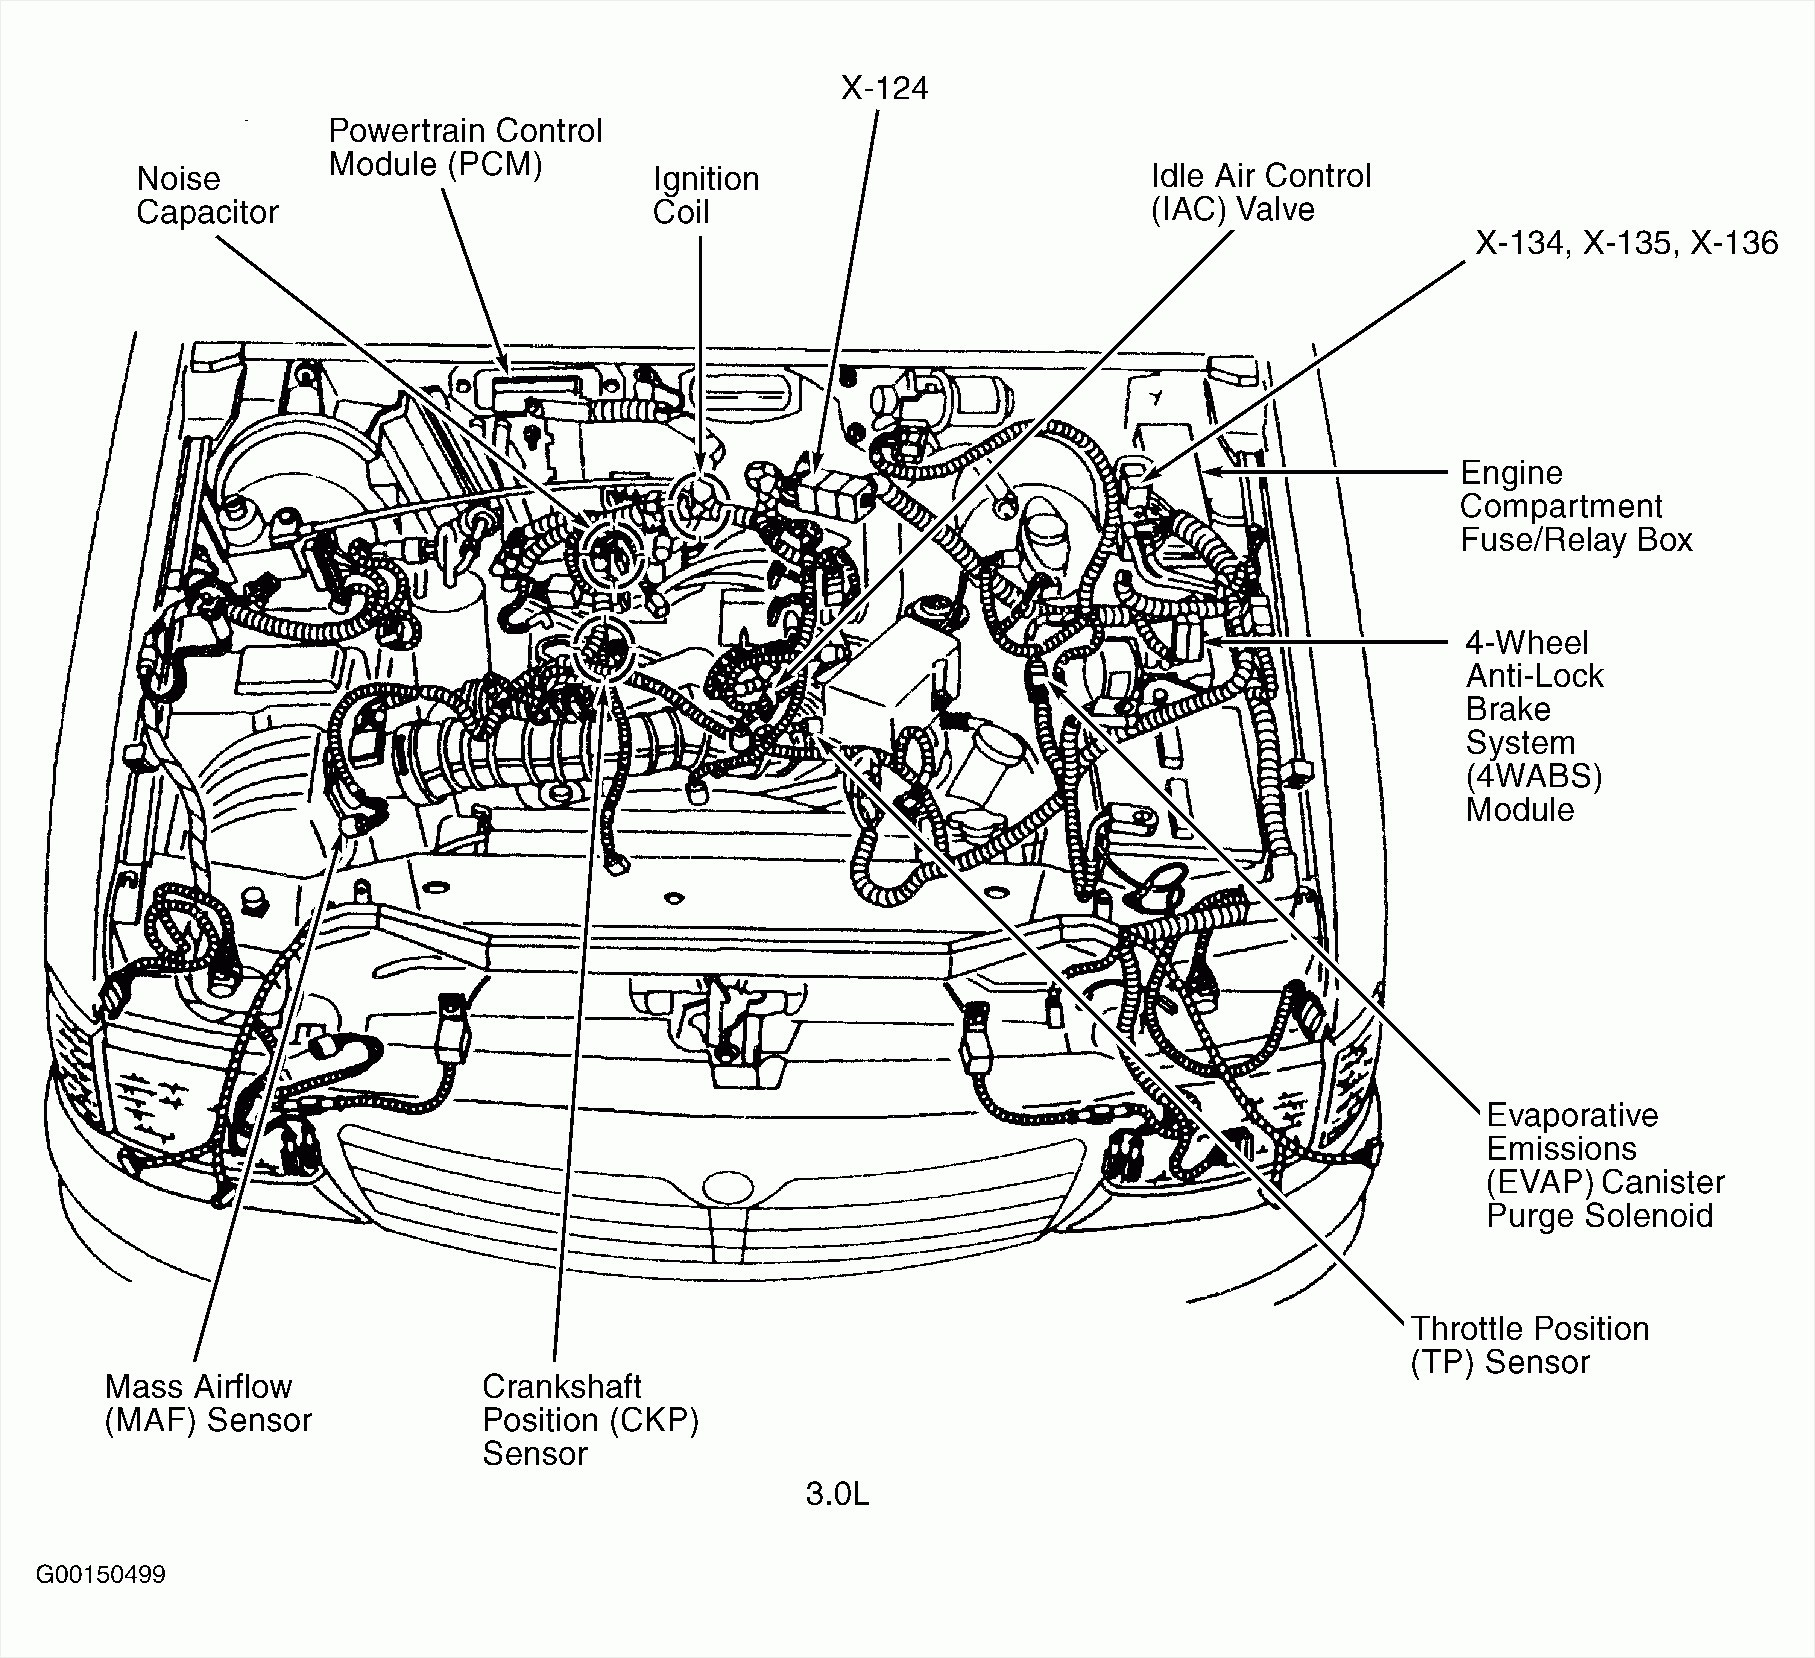 ford 3 0 v6 engine diagram wiring diagram electricity basics 101 u2022 rh casamagdalena us 1995 ford ranger 3.0 engine diagram 1995 ford ranger 4.0 engine diagram